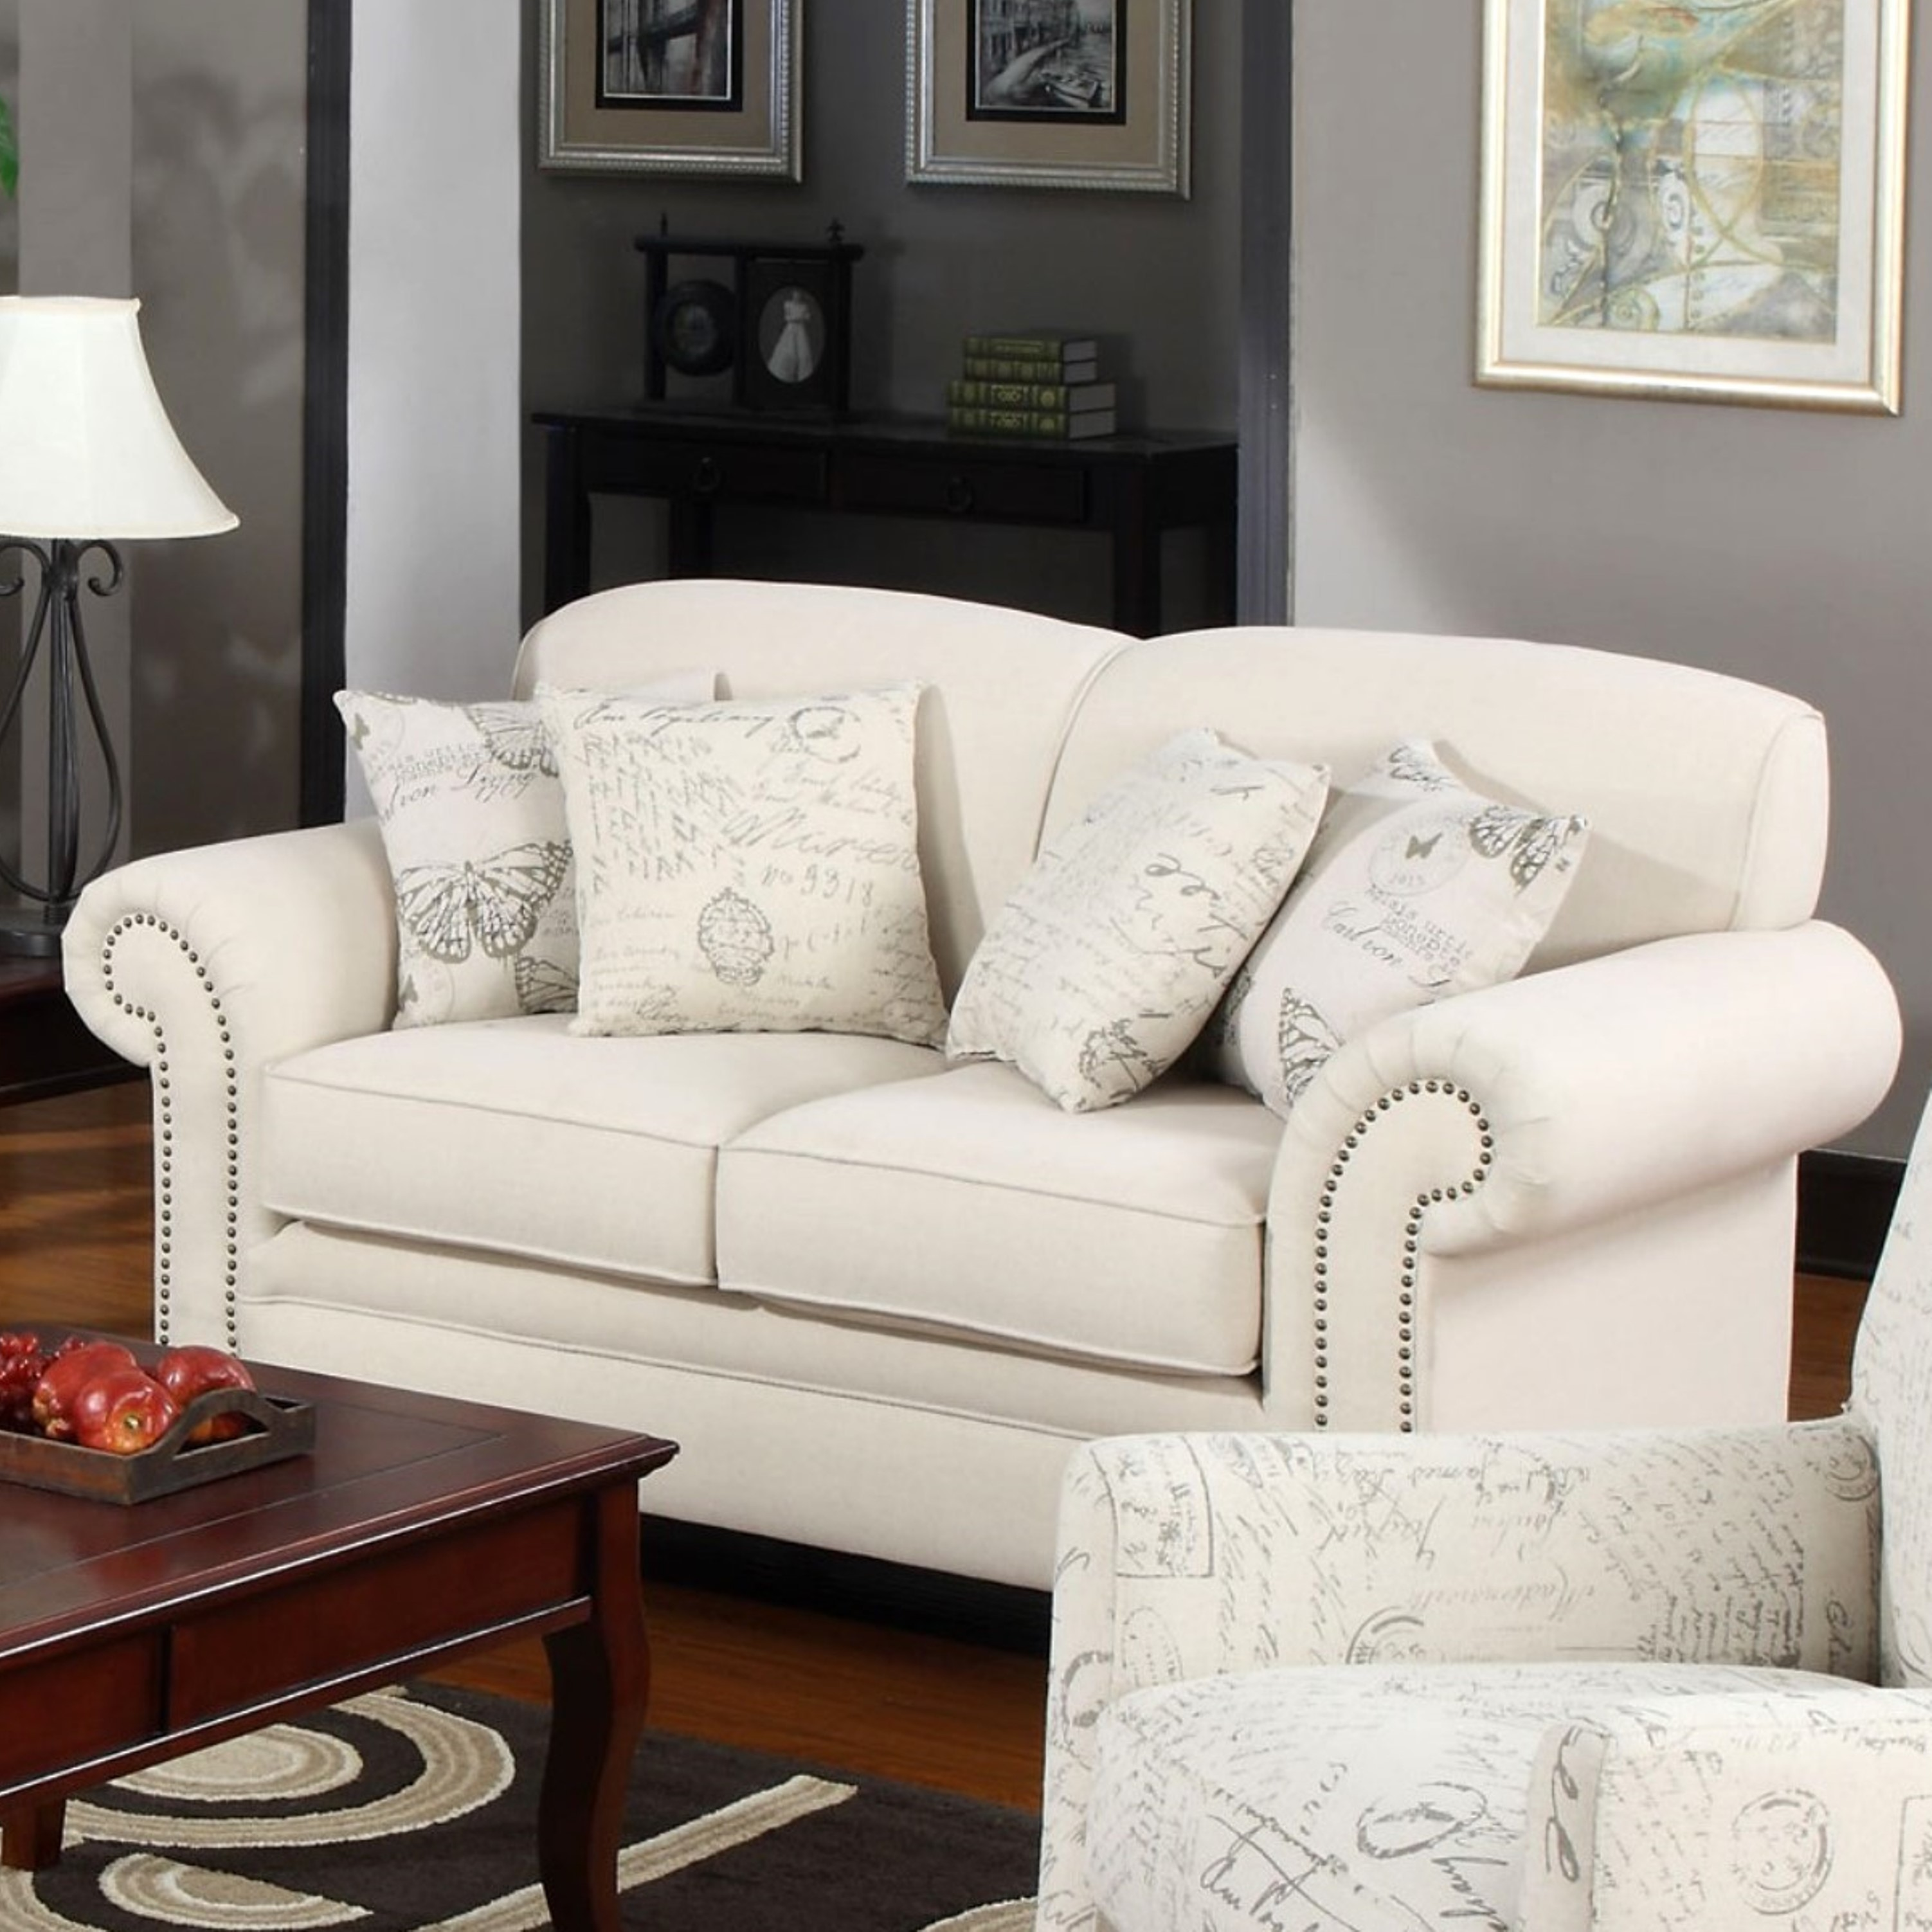 upholtered linen jute leon and french couch modern sofa chanel